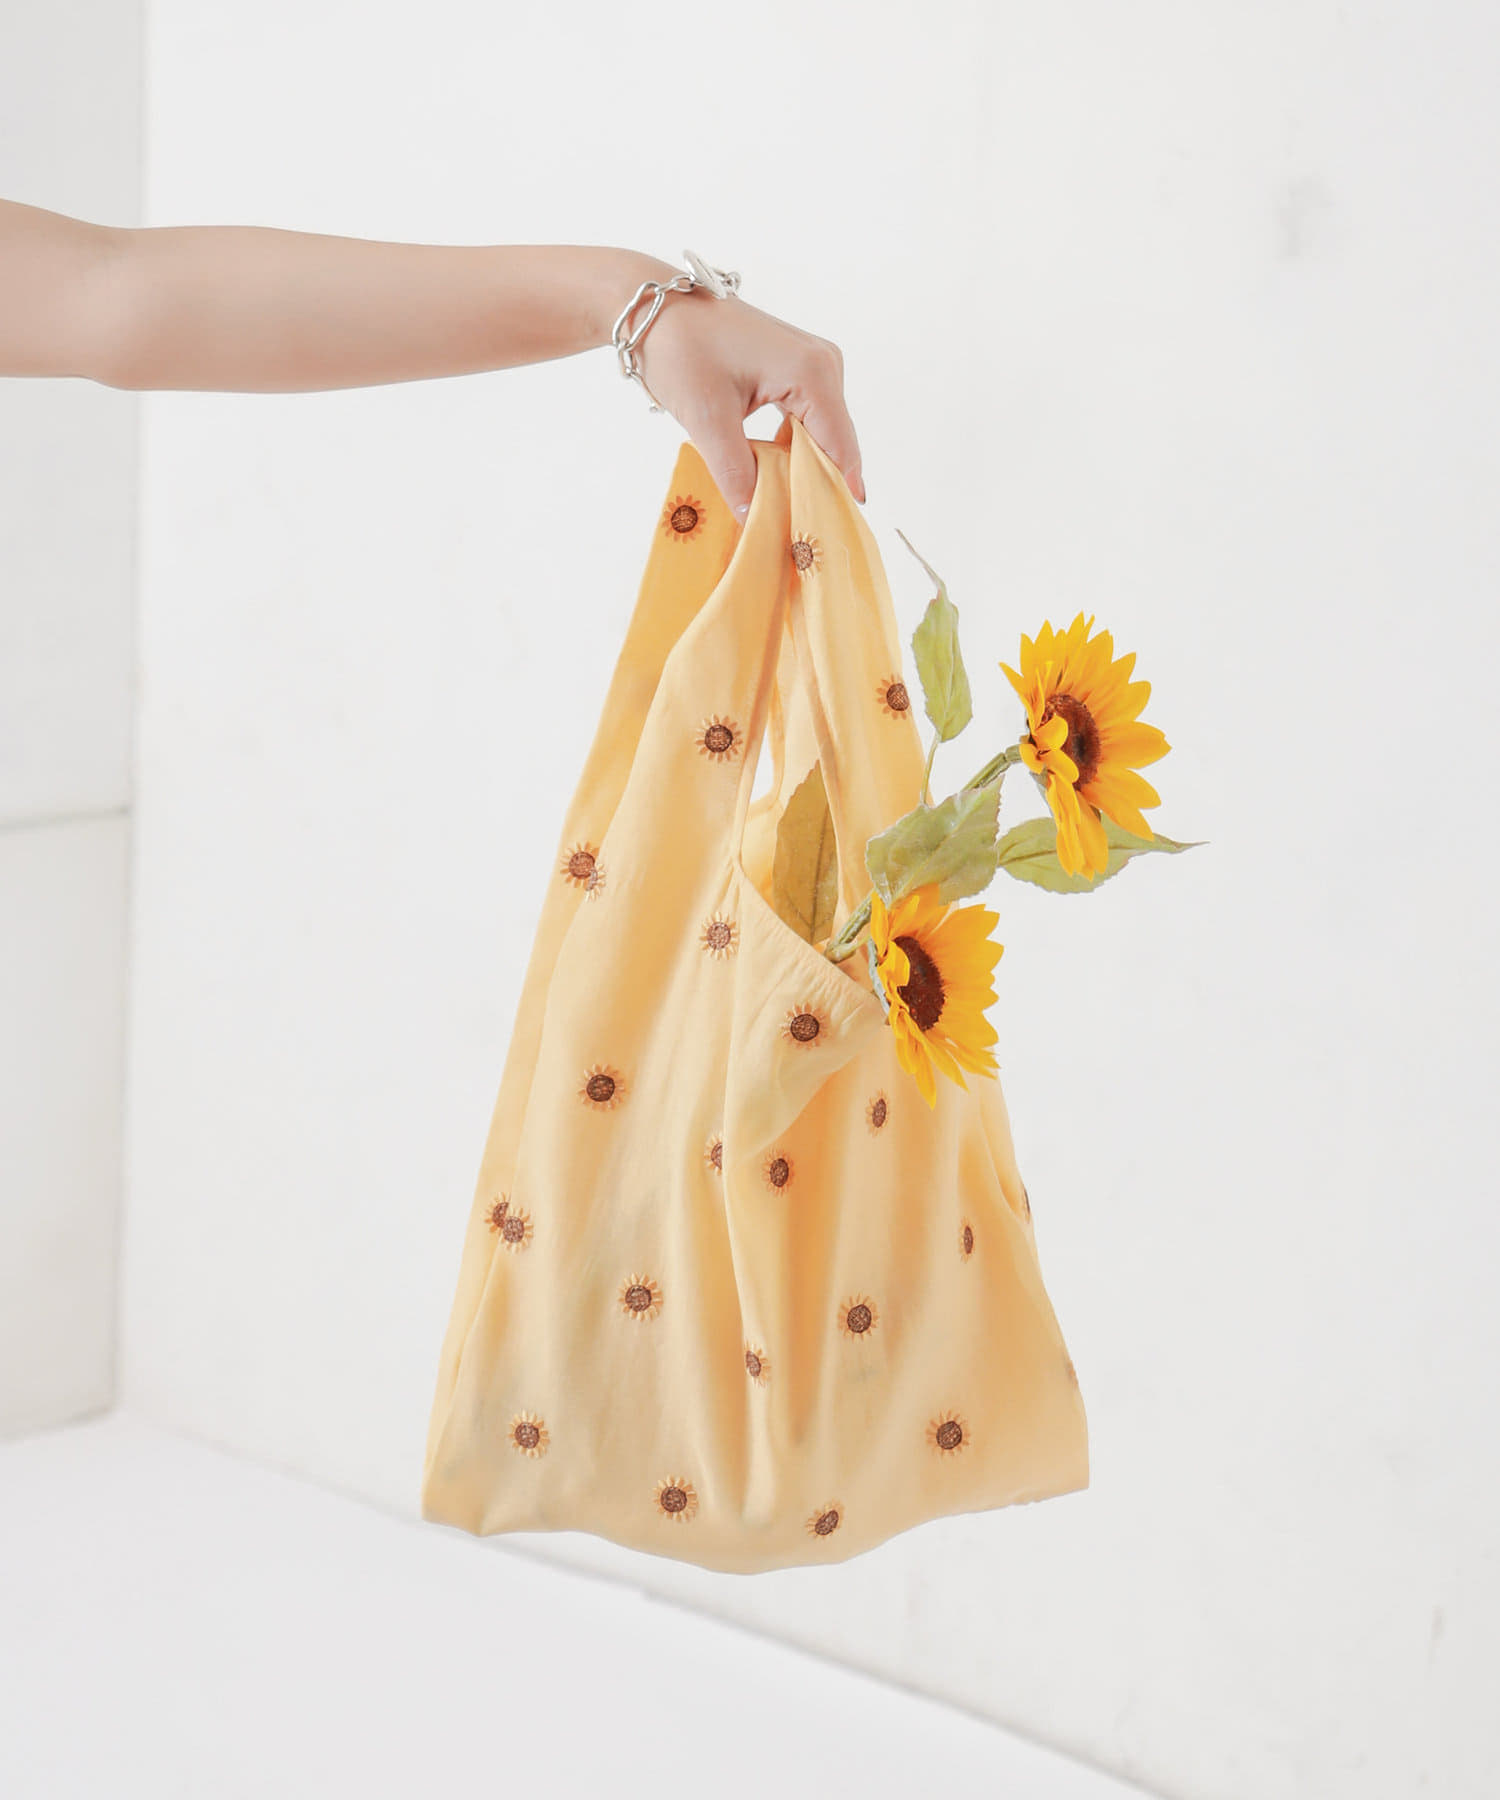 natural couture(ナチュラルクチュール) 12カ月誕生花エコバッグ(7月~12月)